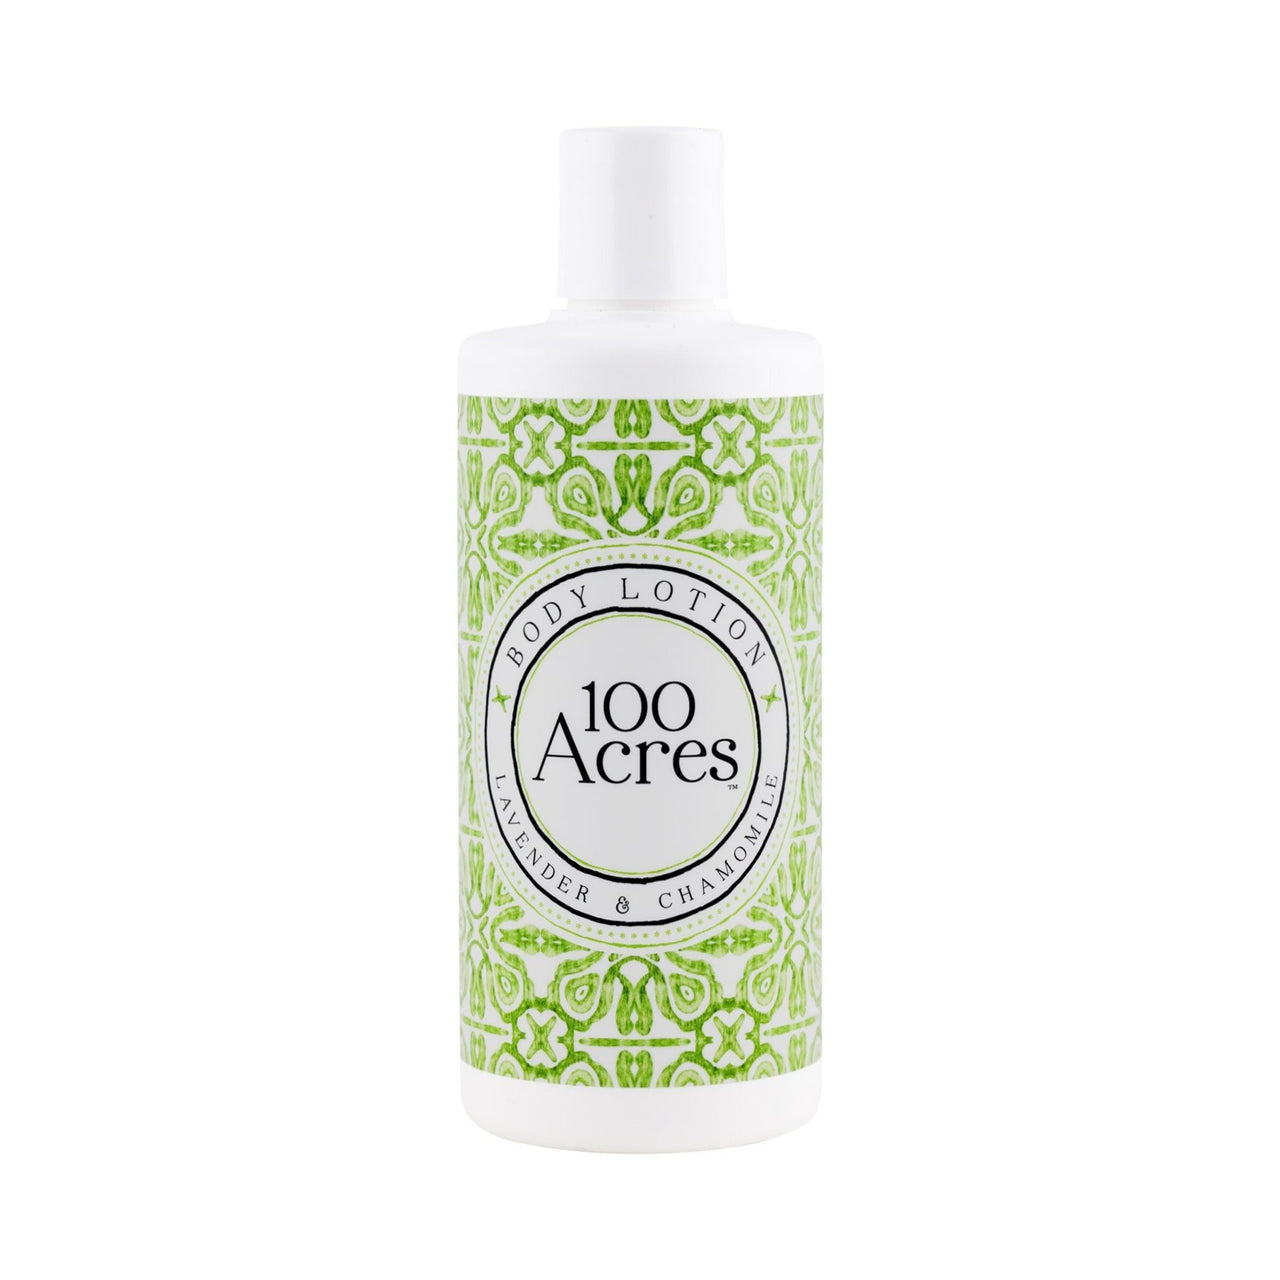 100 Acres Body Lotion 300ml - 100% Natural Ingredients & Essential Oils | 100 Acres Apothecary